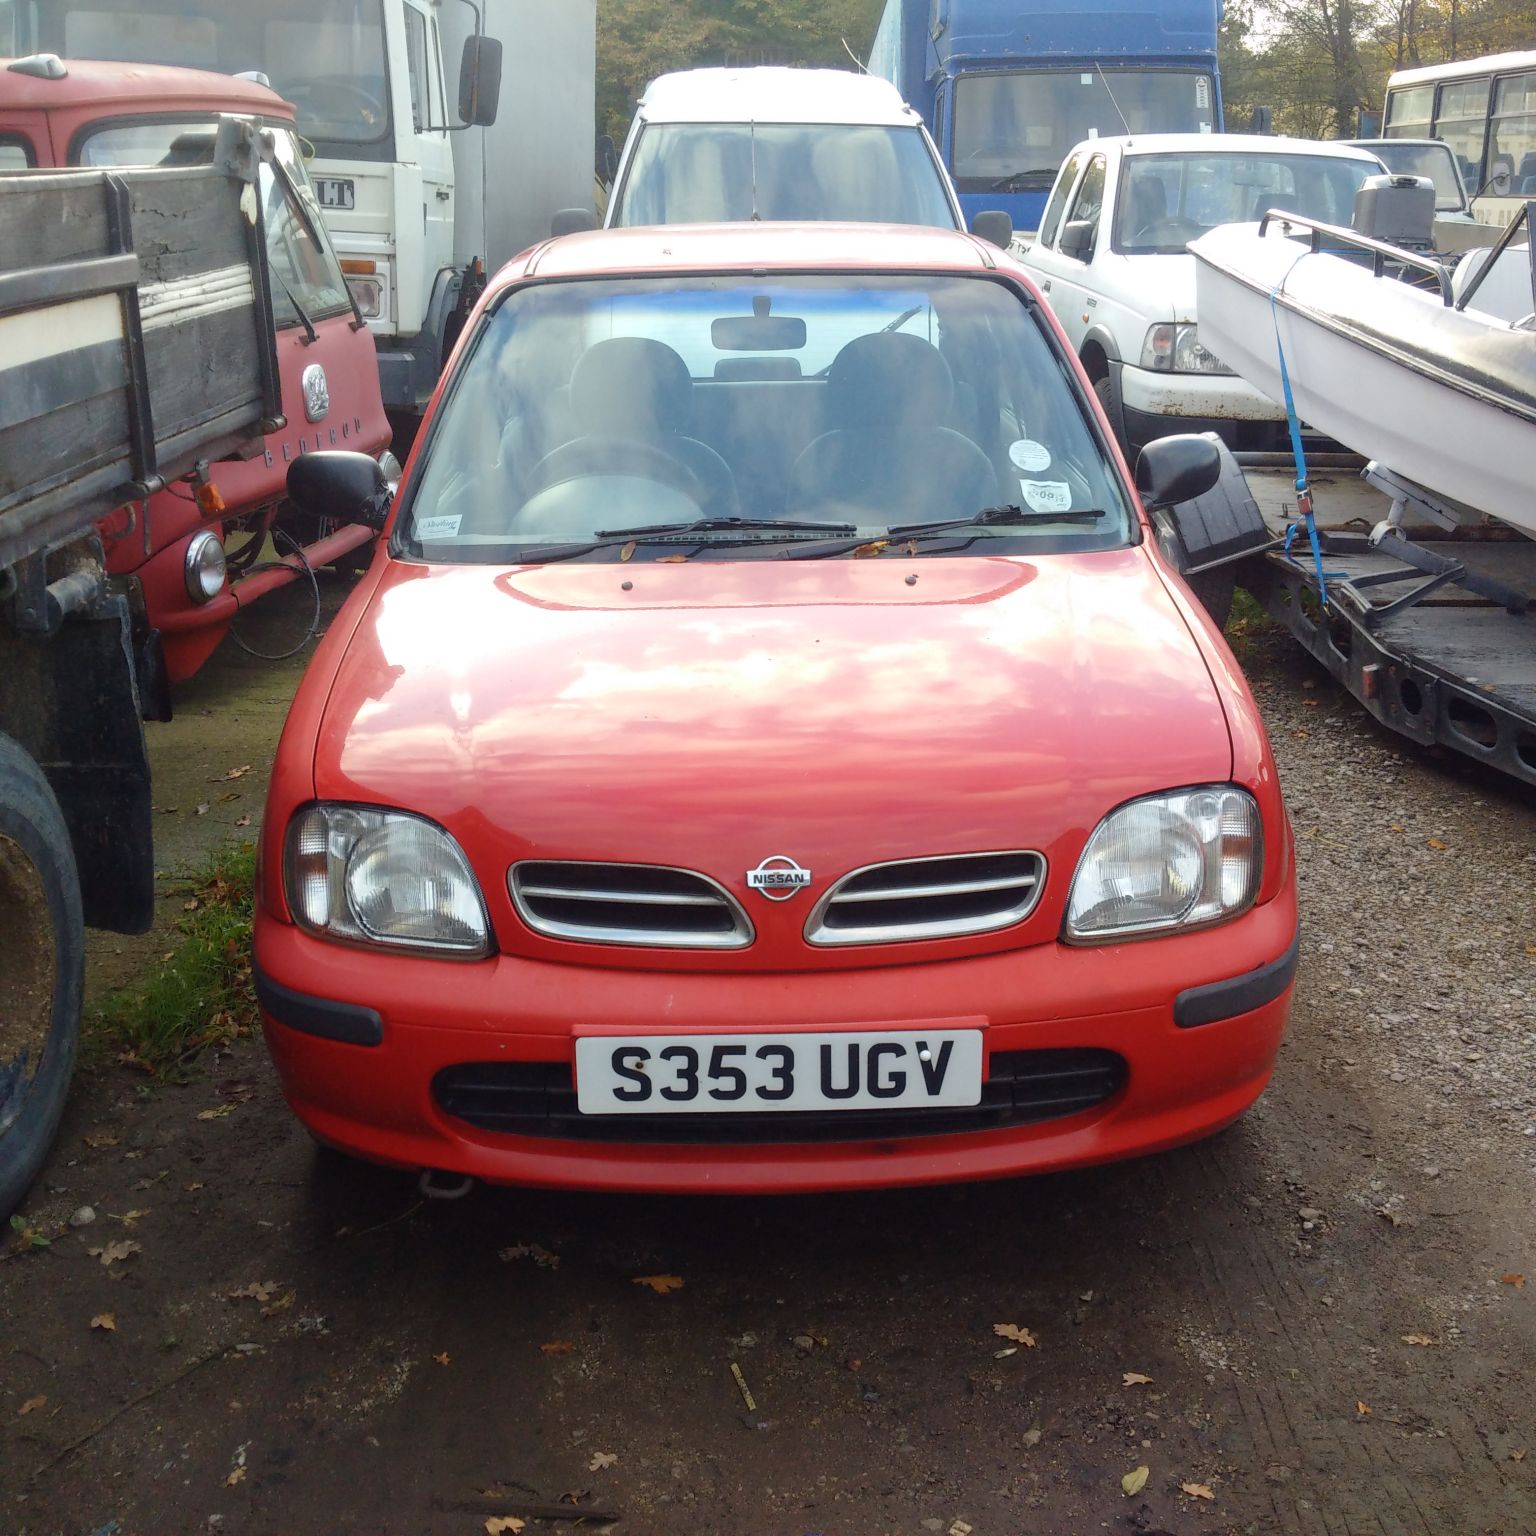 Nissan Micra 1.0 petrol 4 door car. Automatic gearbox.